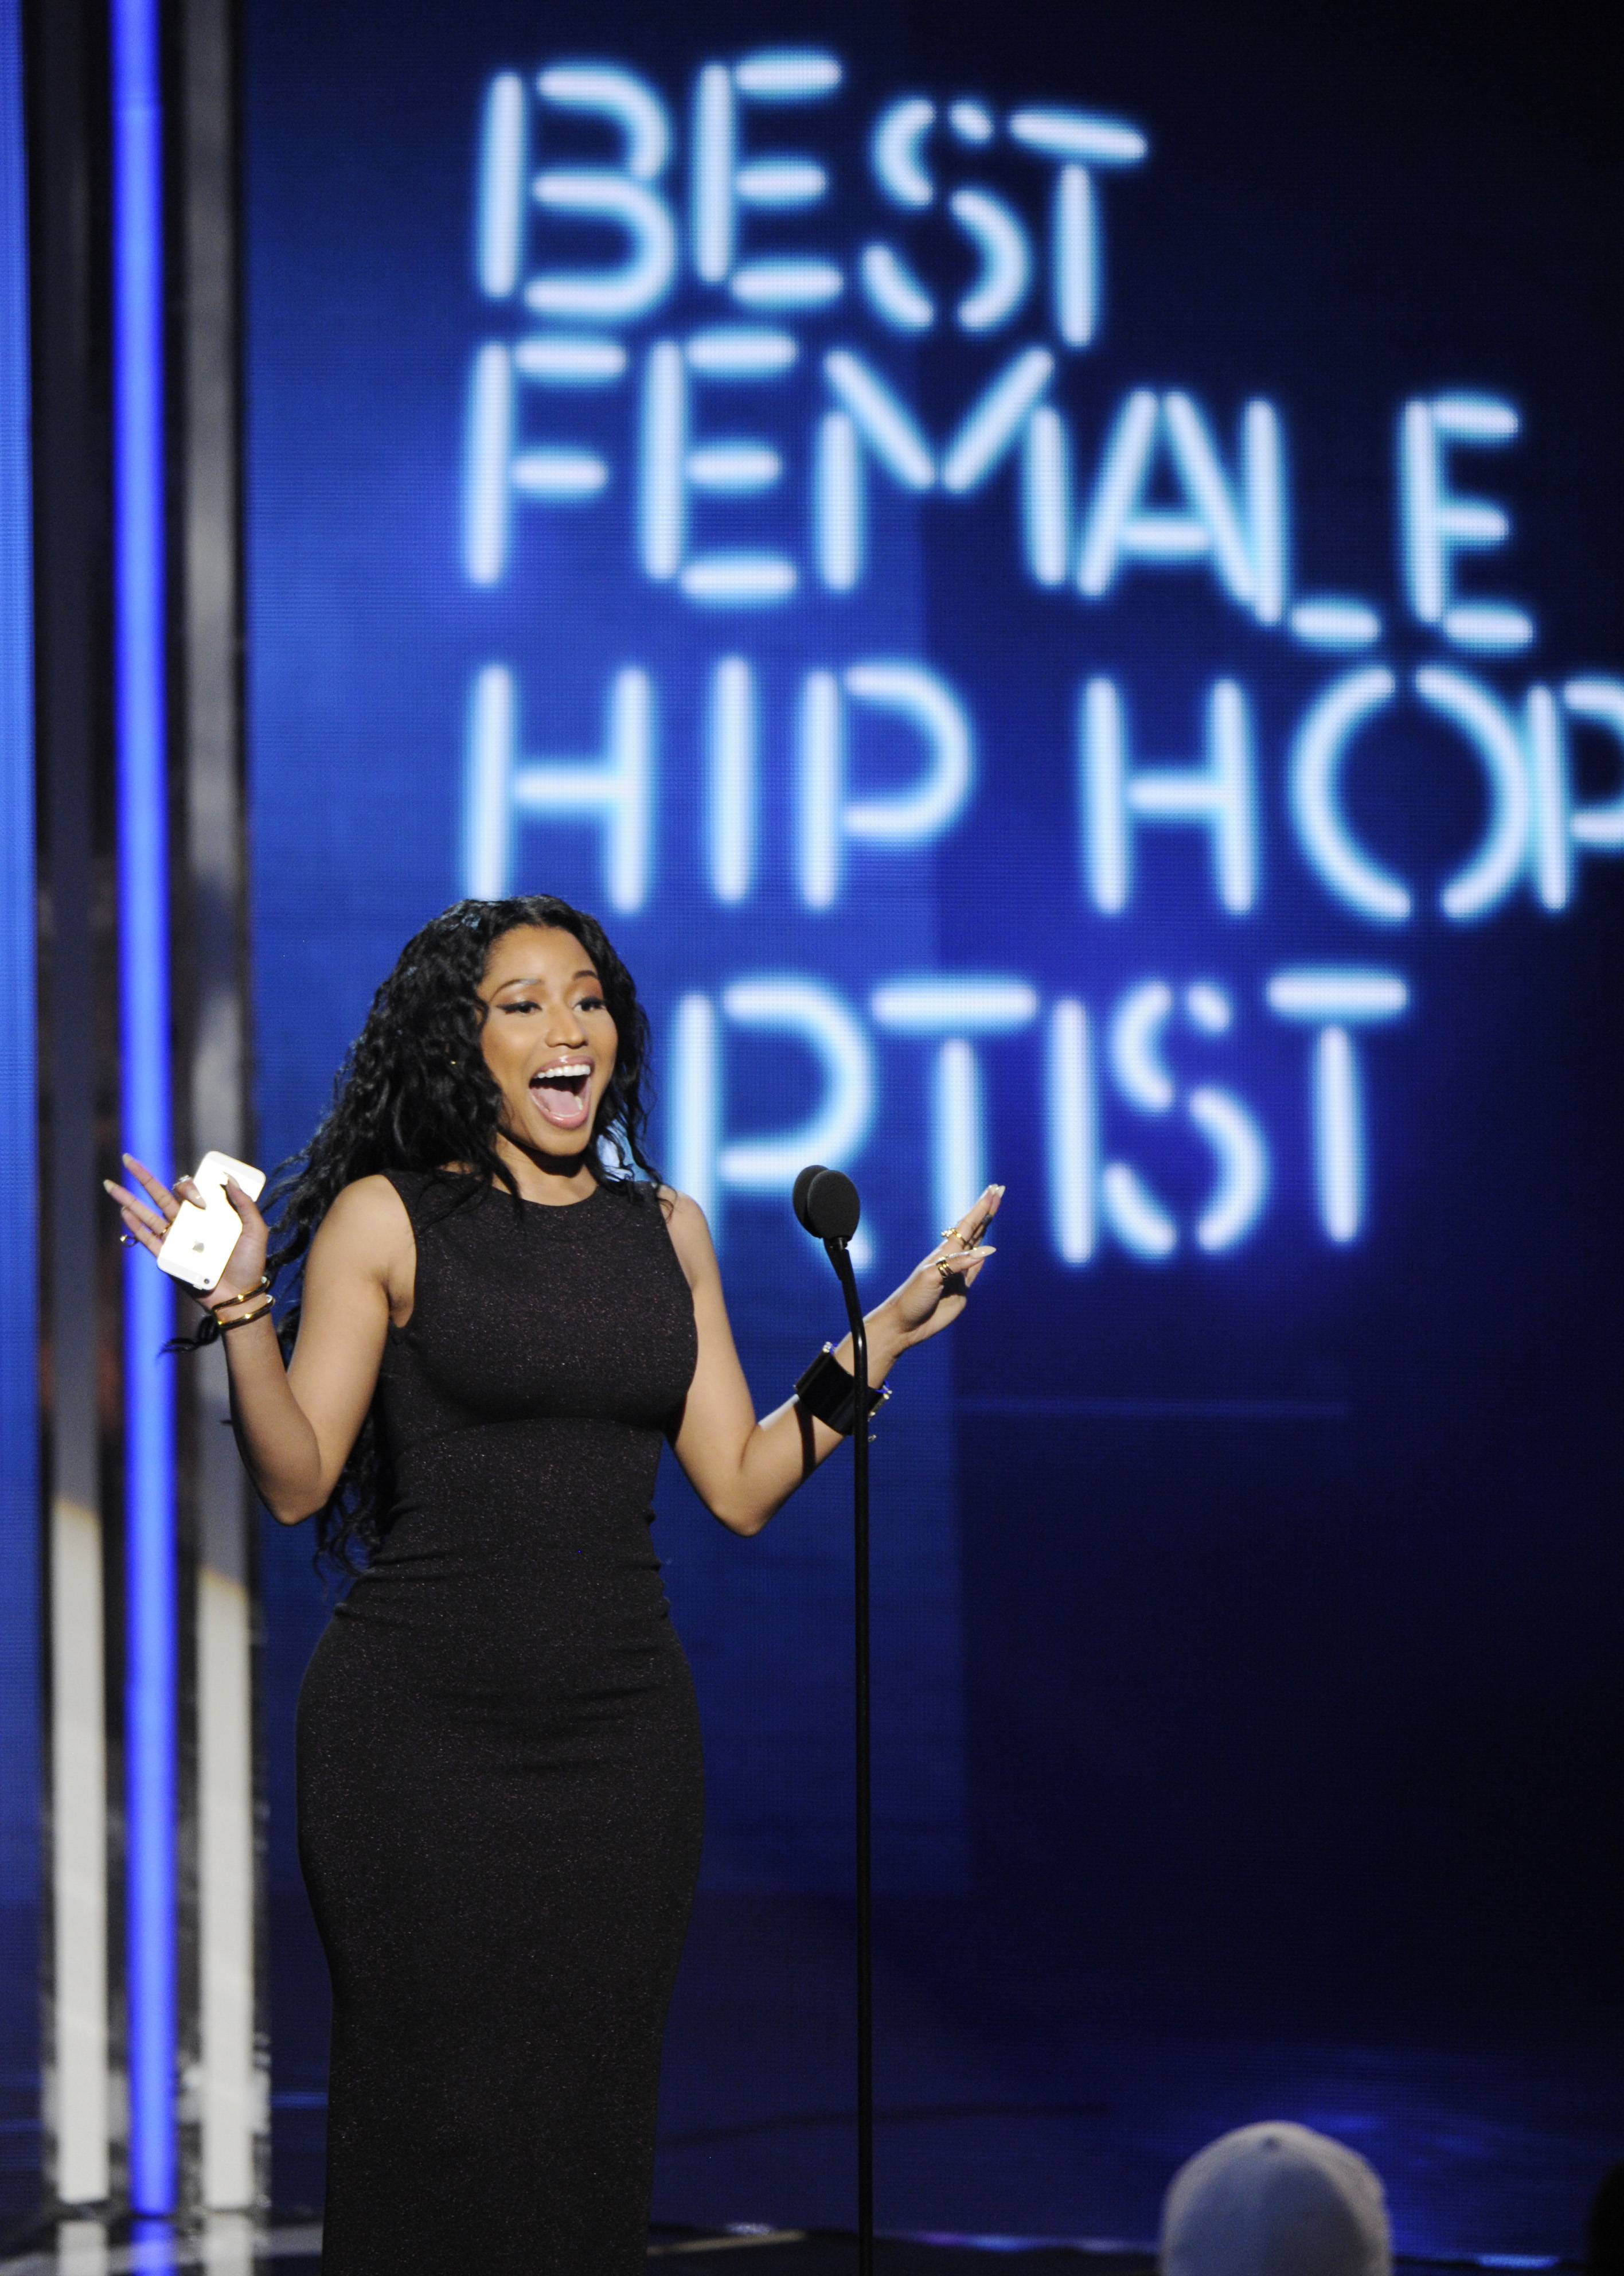 Nicki Minaj accepts the award for best female hip-hop artist at the BET Awards at the Nokia Theatre on Sunday in Los Angeles.